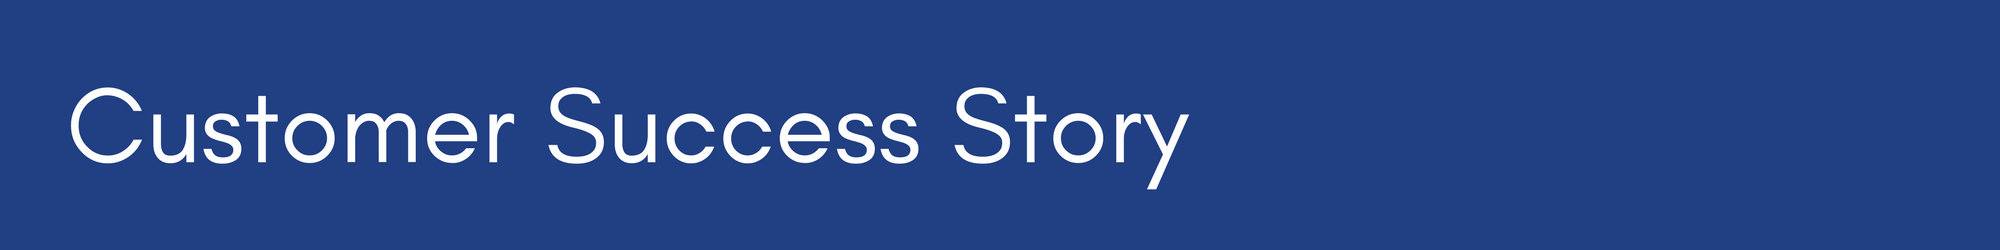 Customer Success Story Banner.png